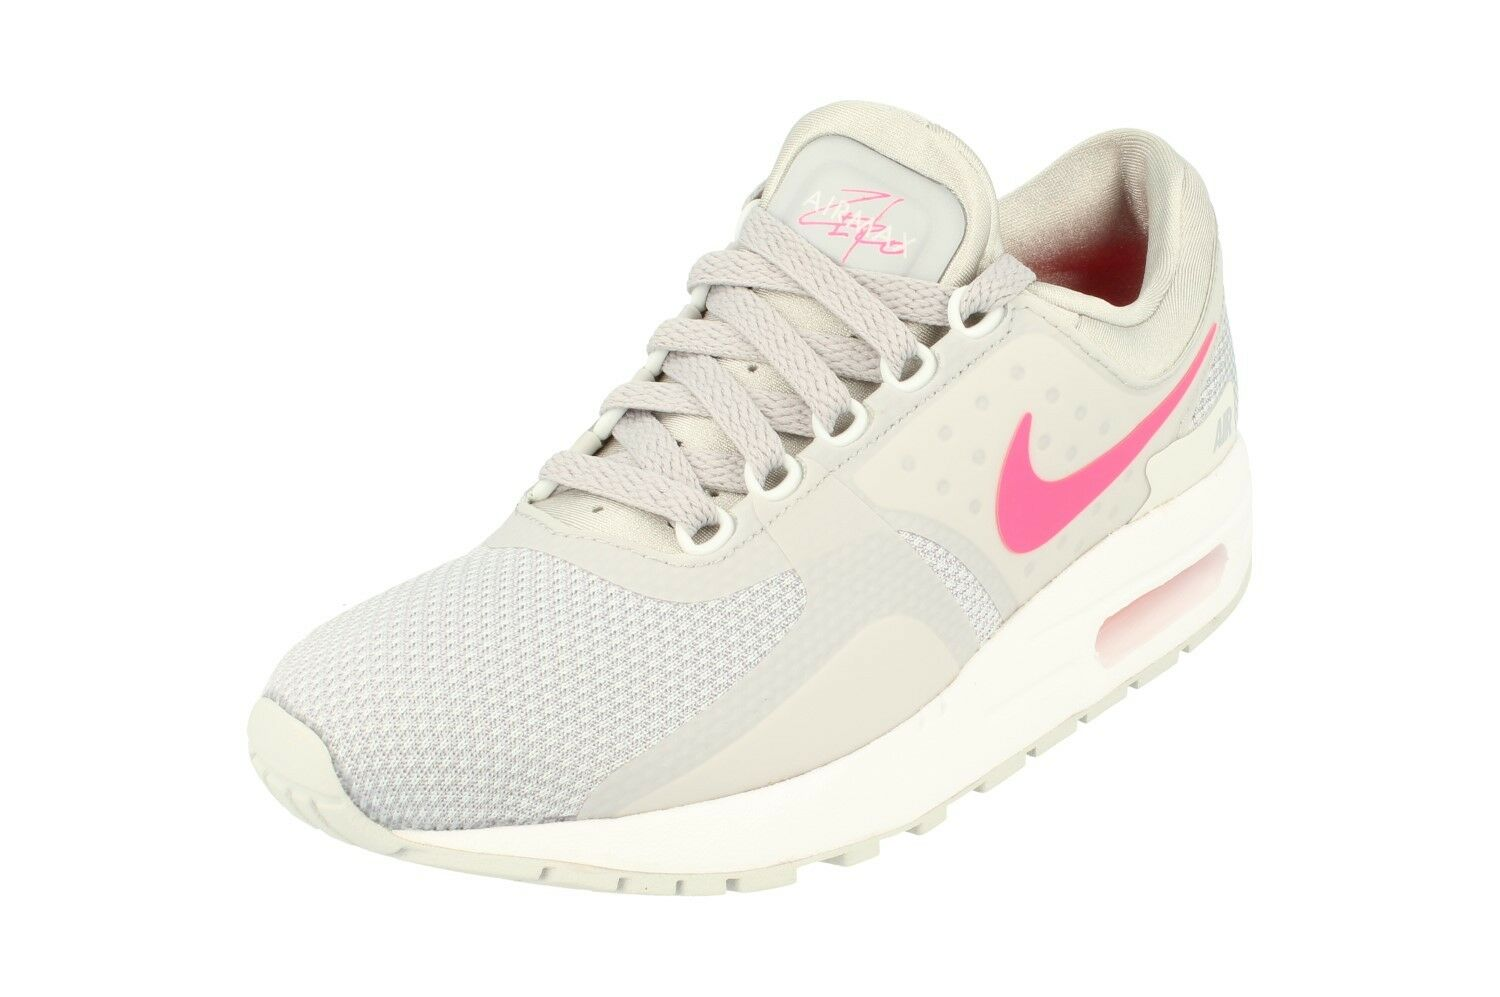 Nike Air Max Zero Essential GS Running Trainers 881229 003 Turnschuhe schuhe